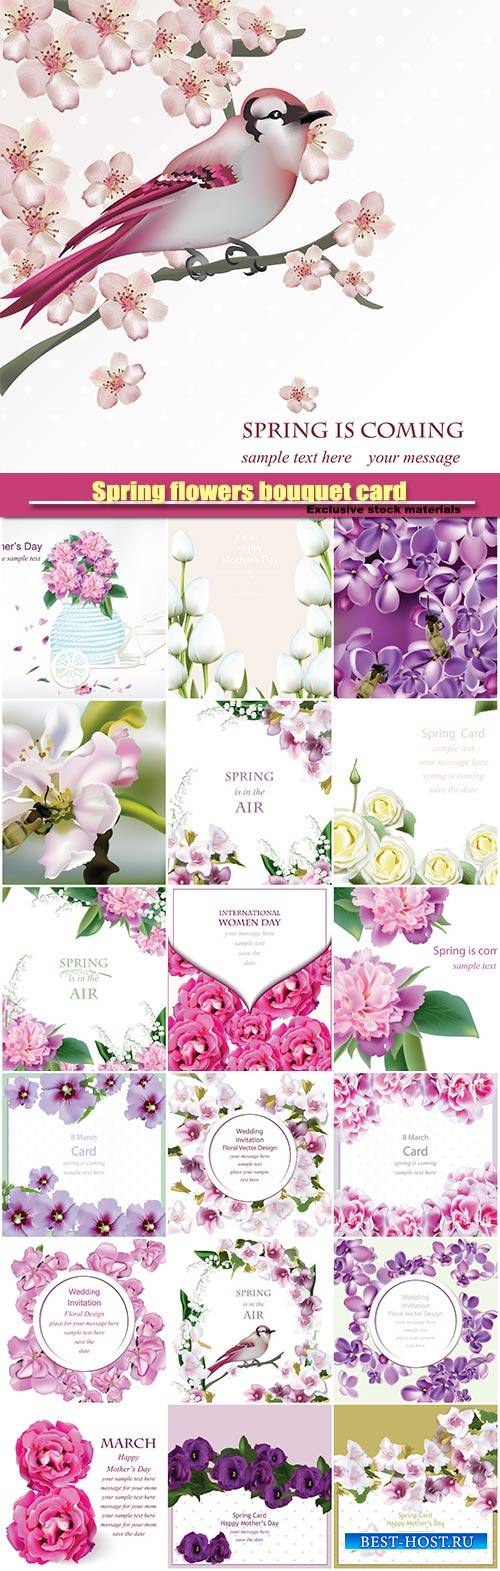 Spring flowers bouquet card background, weddings, birthday, anniversaryv ec ...